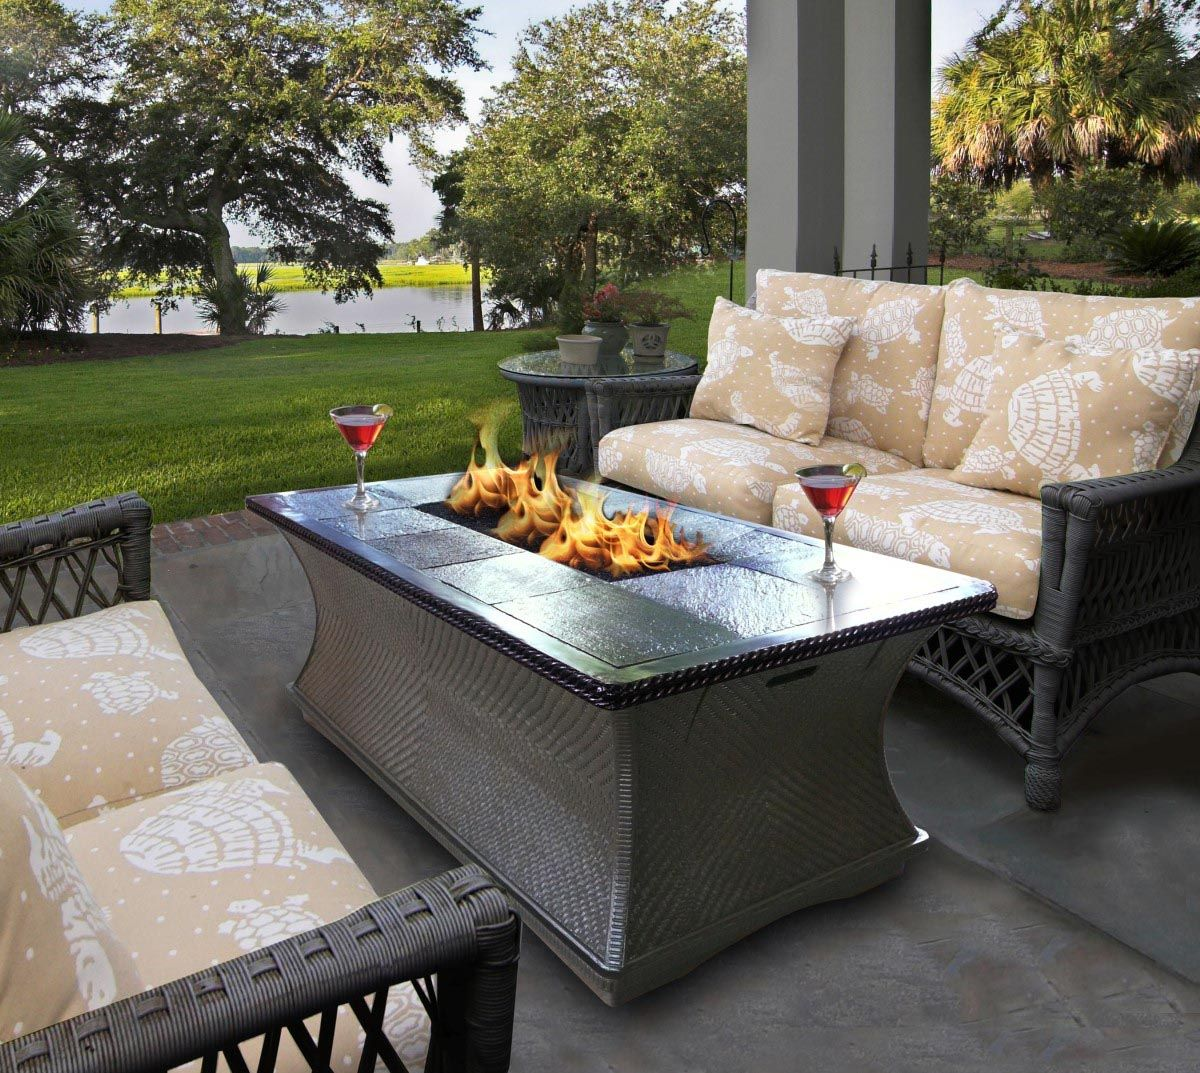 Diy Propane Fire Pit Table Fire Pit Coffee Table Fire Pit Sets